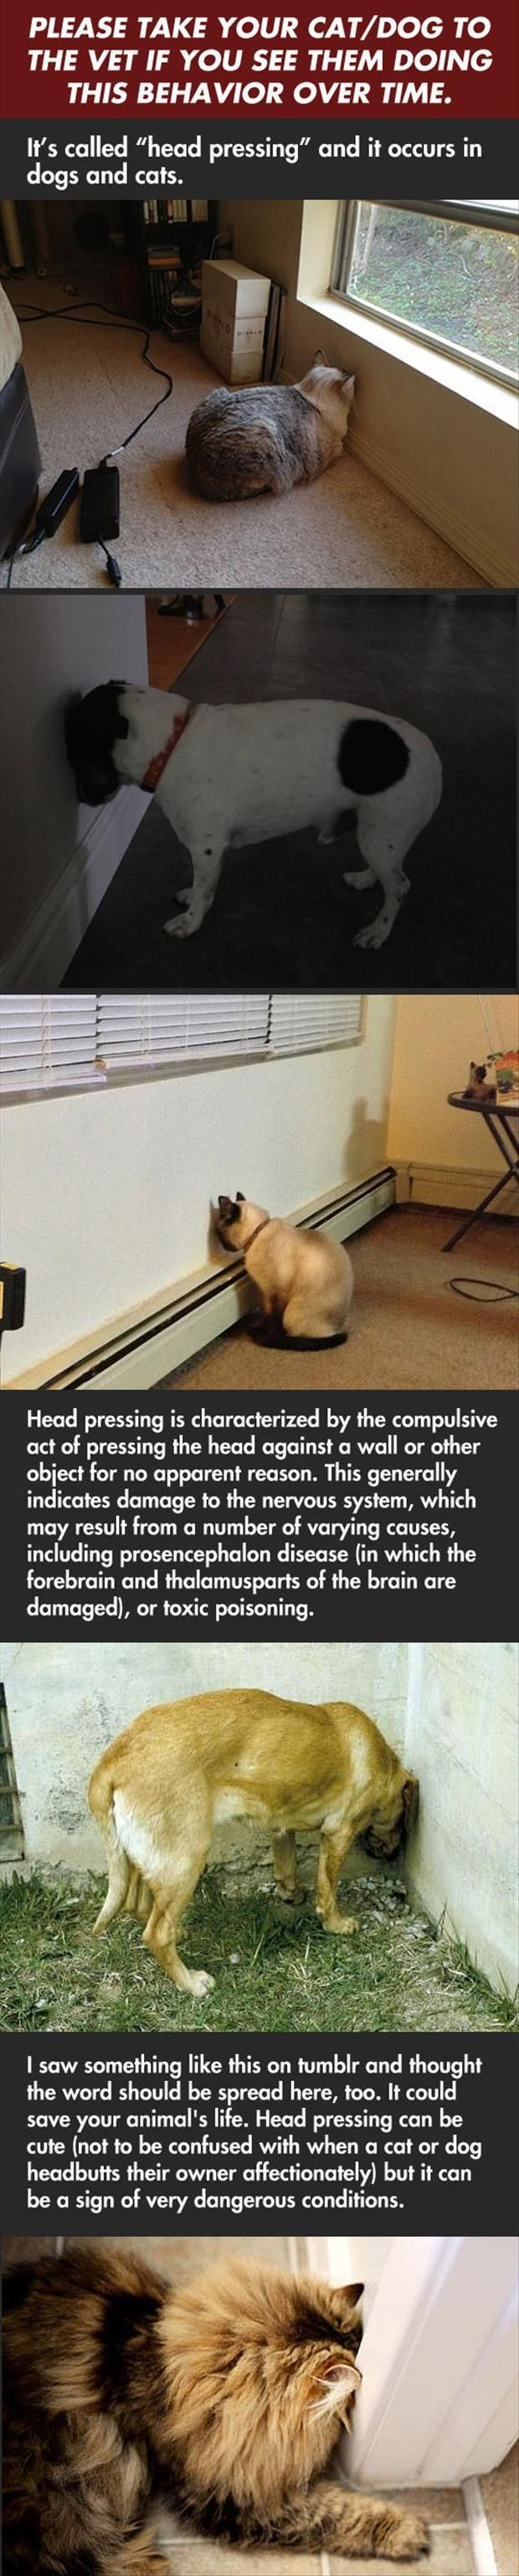 """""""Head Pressing"""" by dogs and cats. Did a search and confirmed this is legit. Link to page on Pet MD site with more information."""